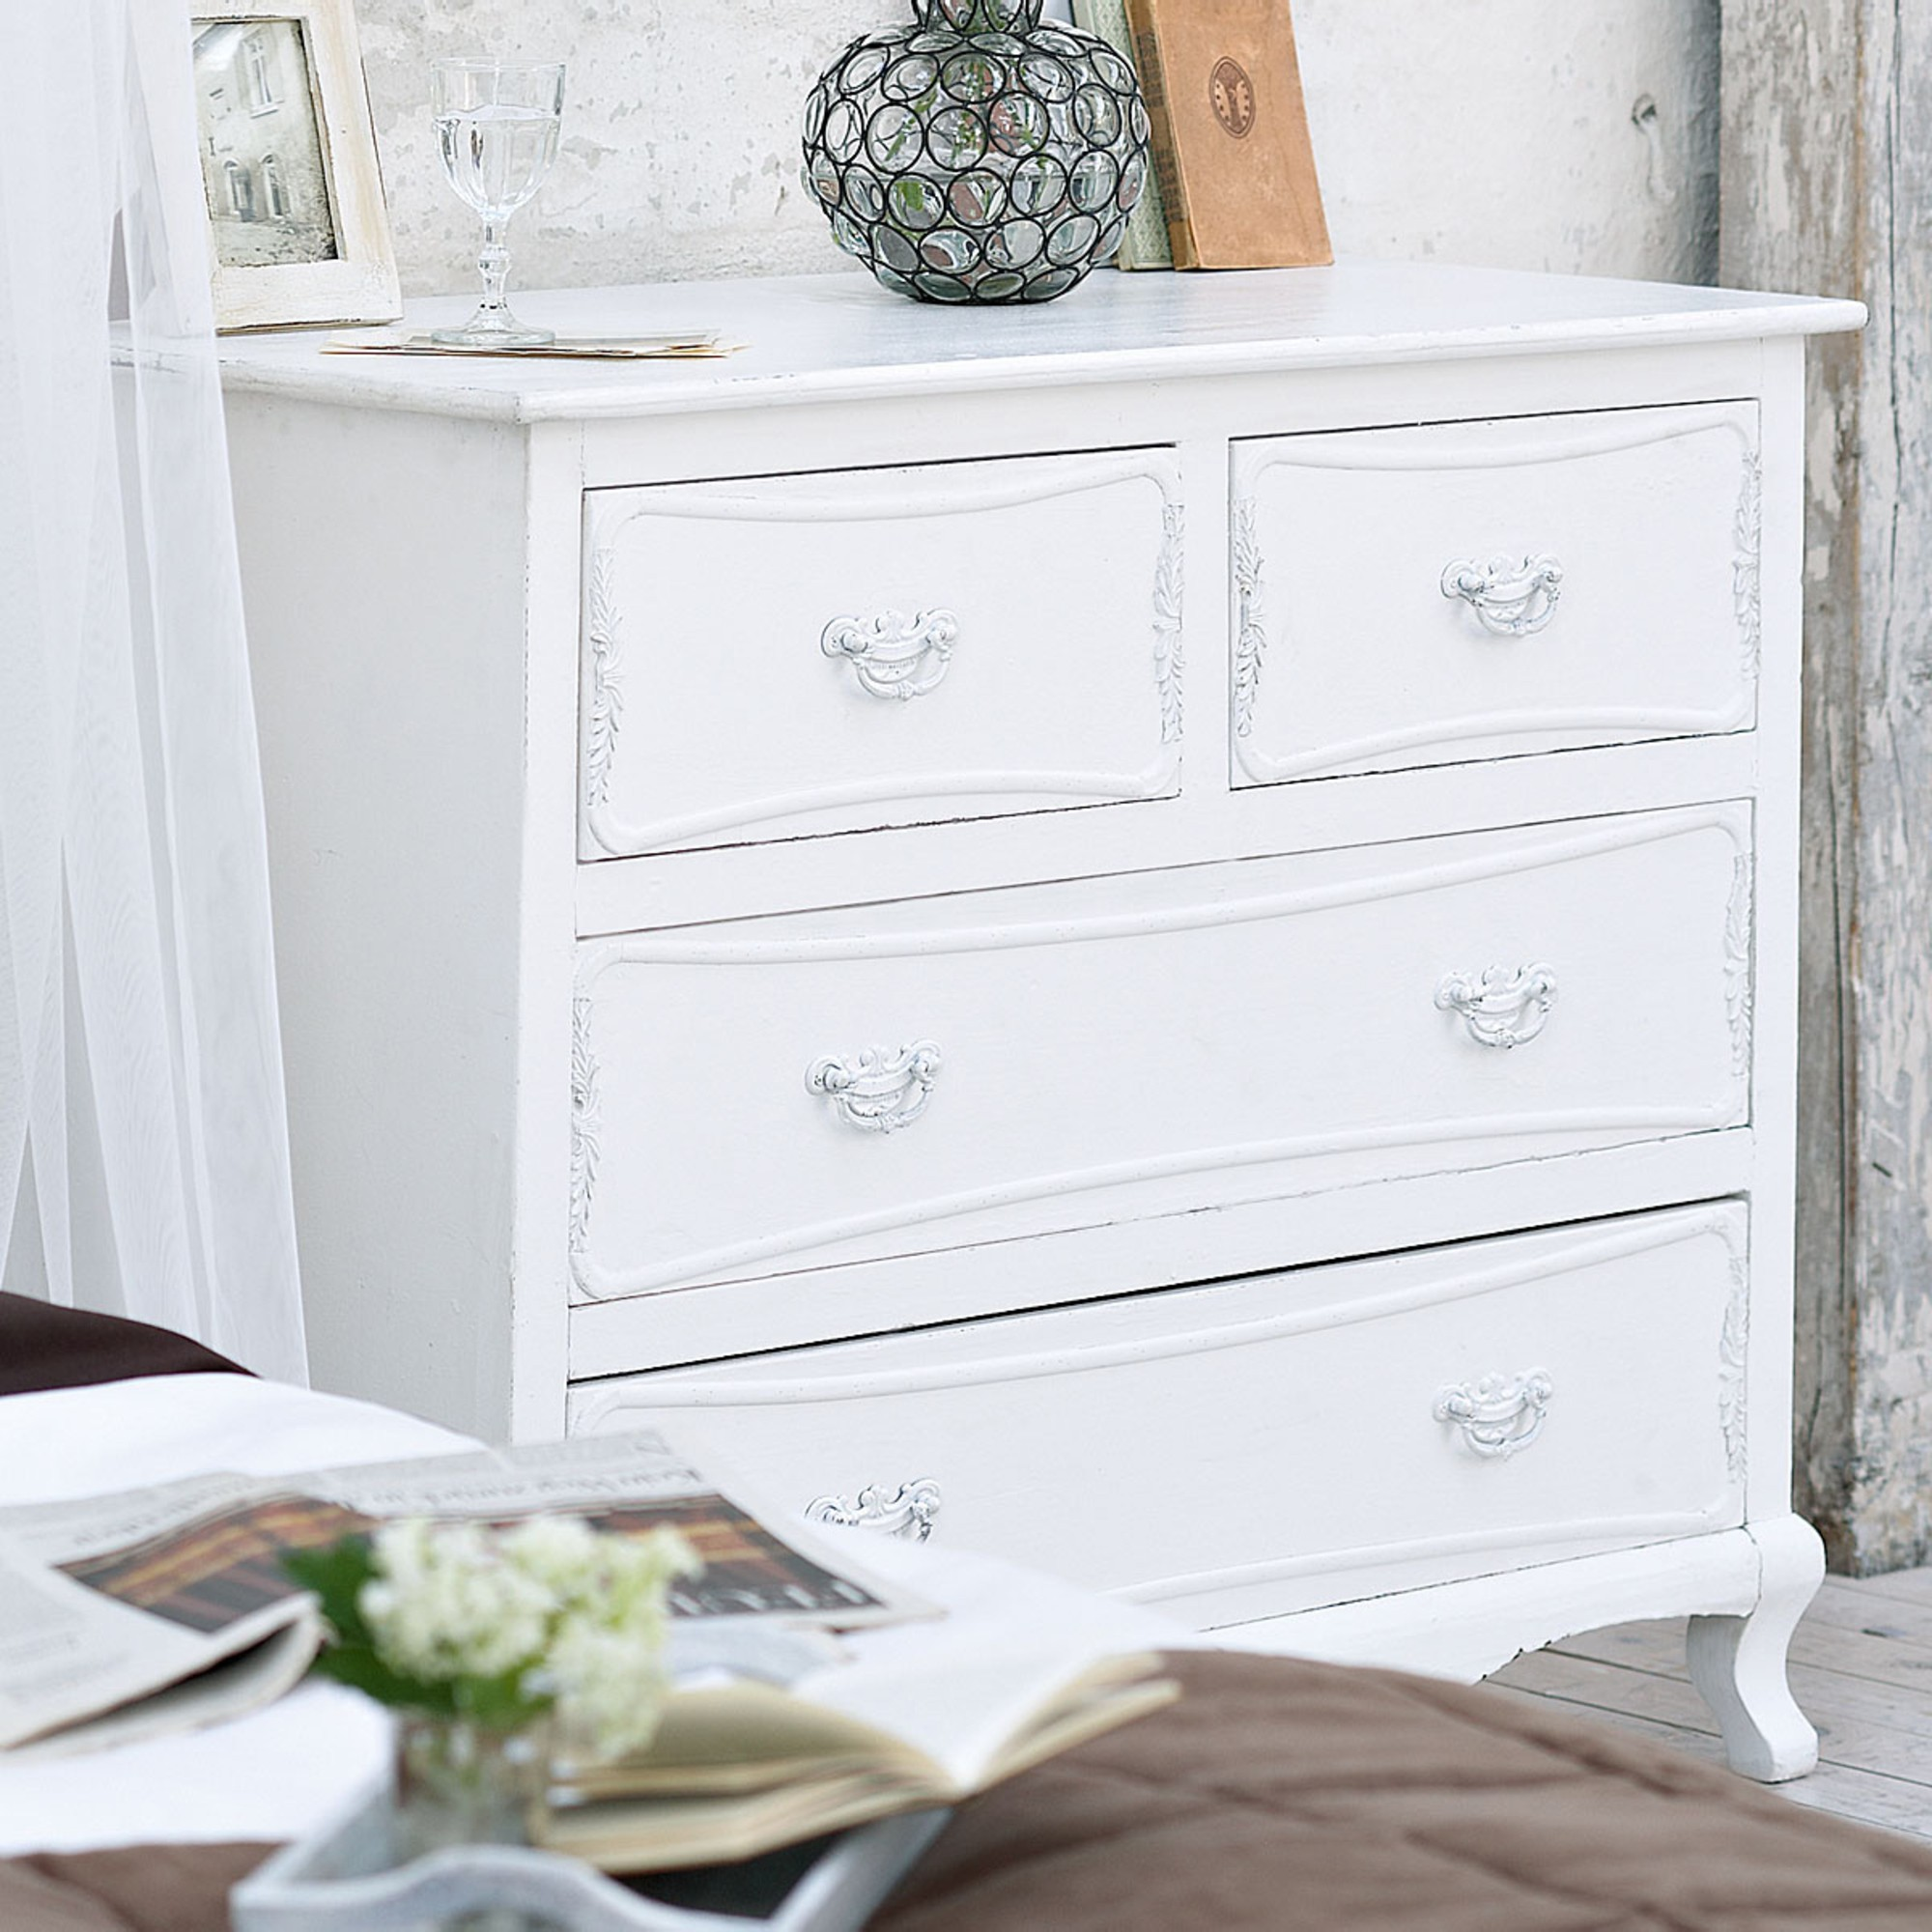 Antike kommode im shabby chic ideen top for Kommode shabby